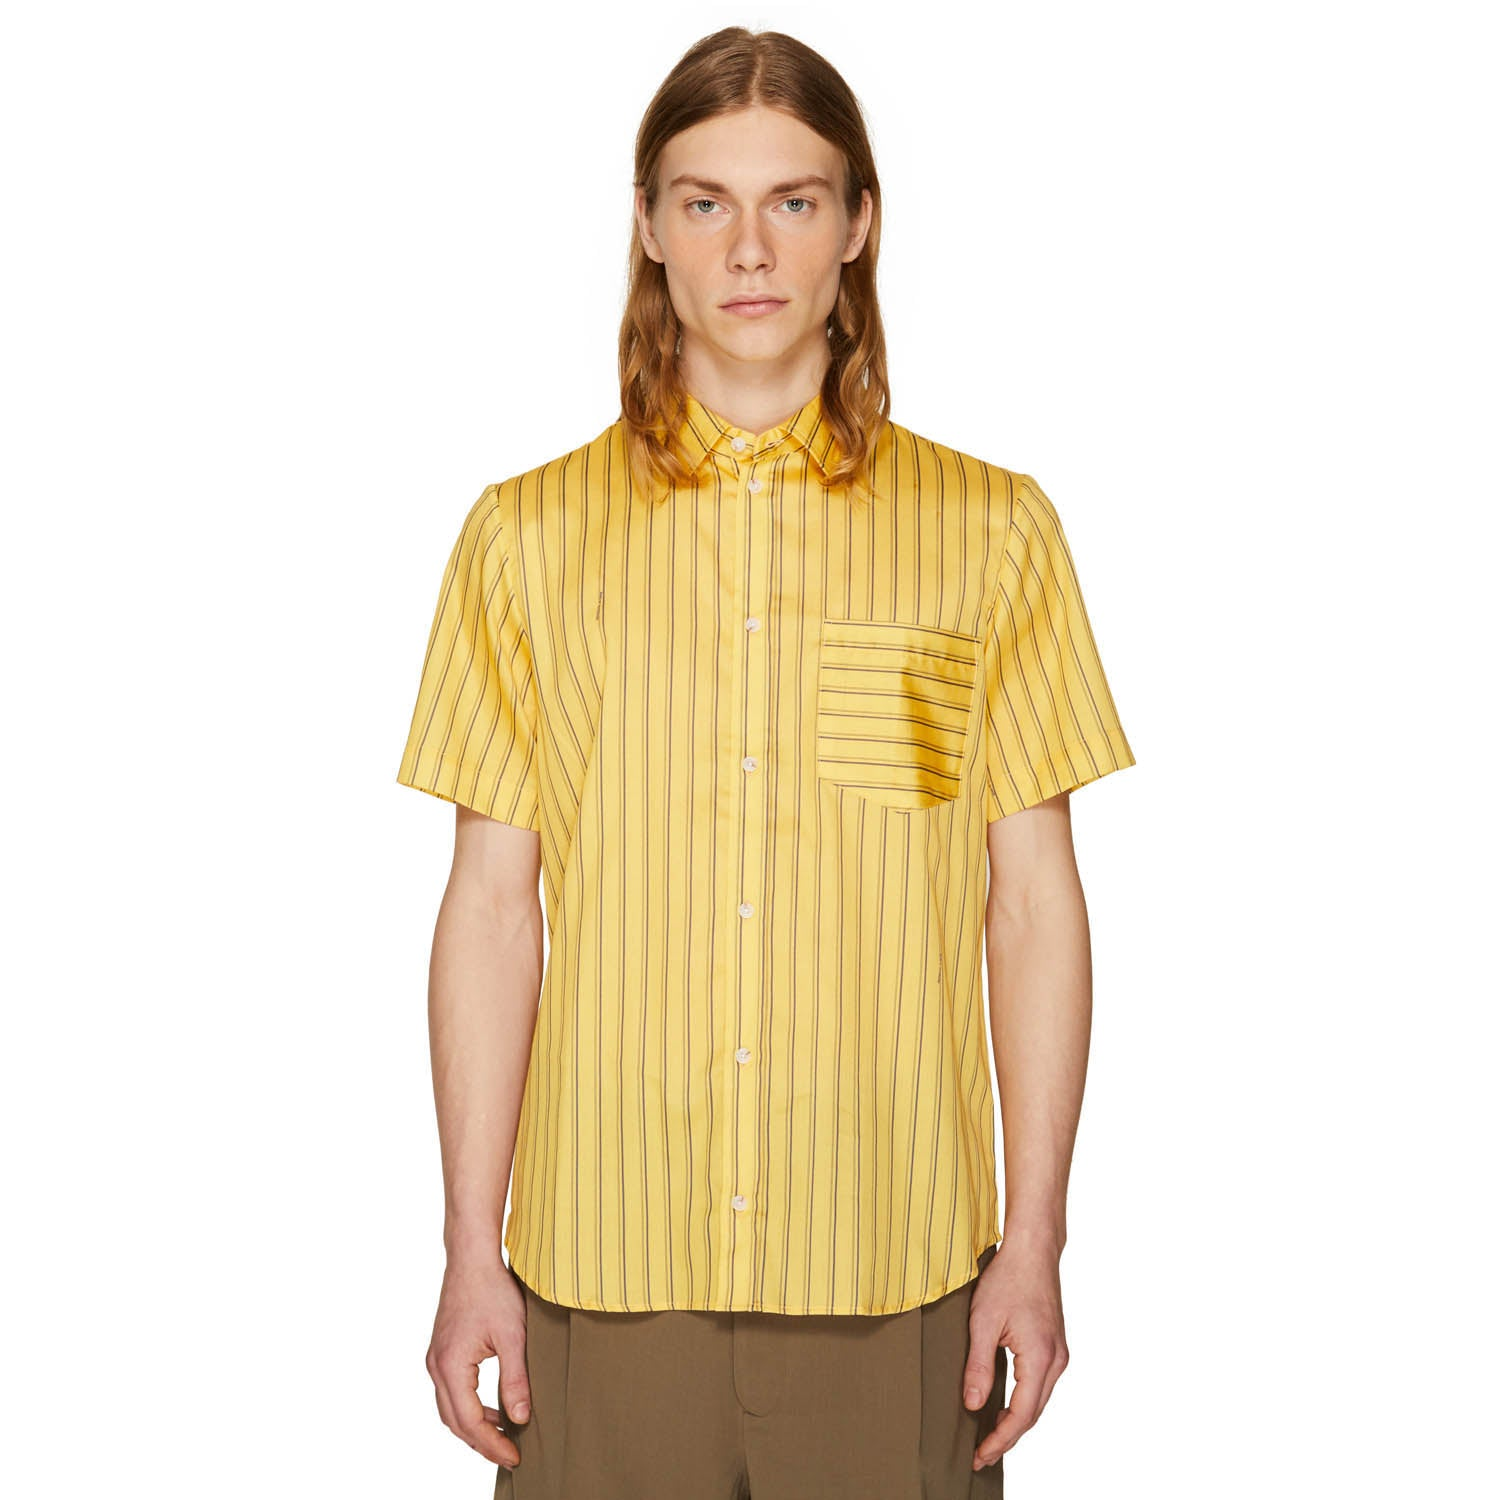 BAND STRIPE SHIRT LEMON YELLOW